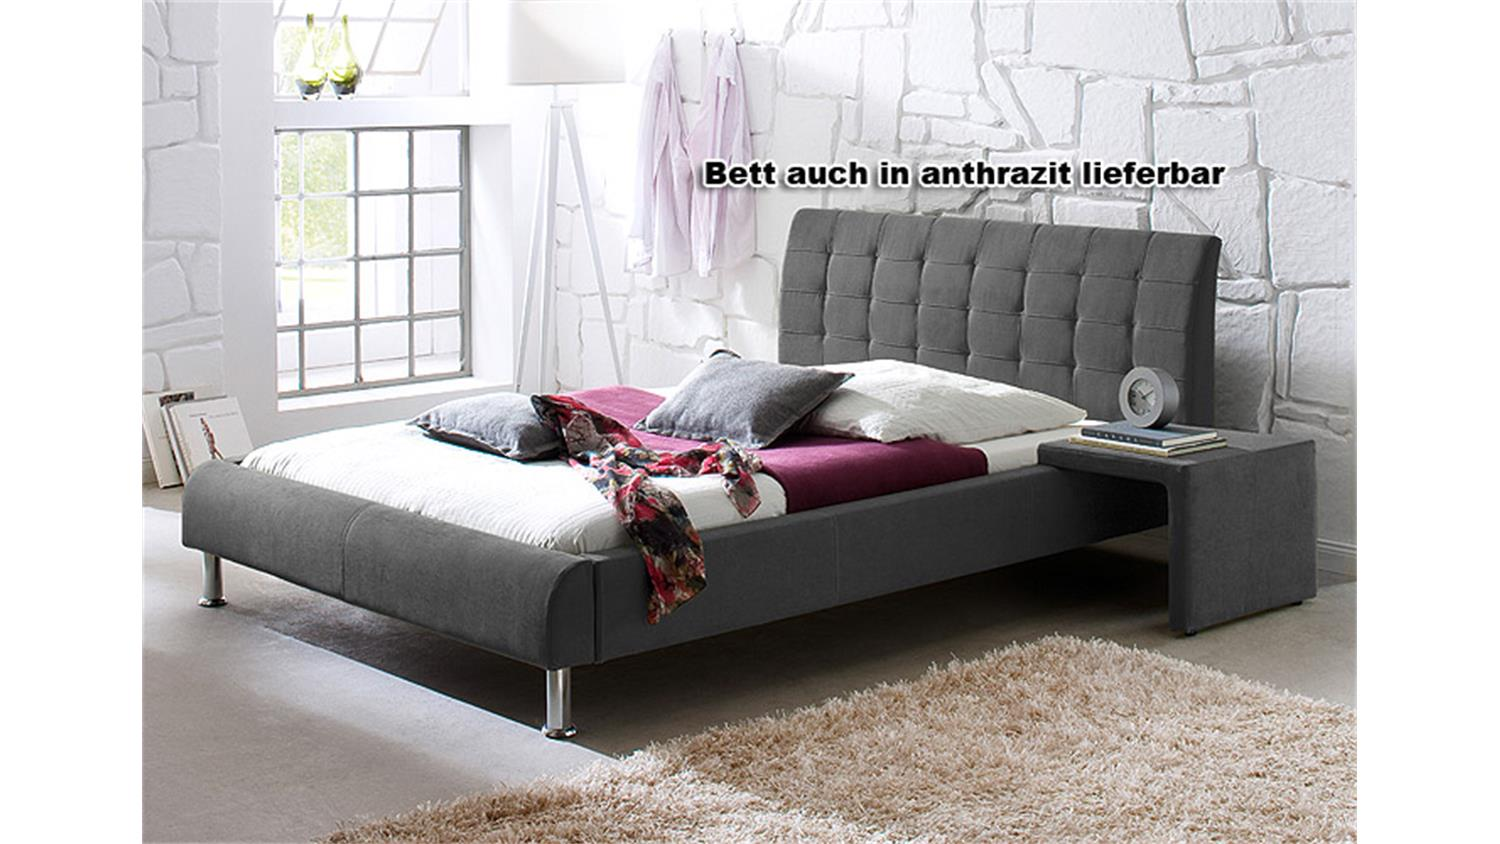 bett kopfteil mit aufbewahrung alle ideen ber home design. Black Bedroom Furniture Sets. Home Design Ideas